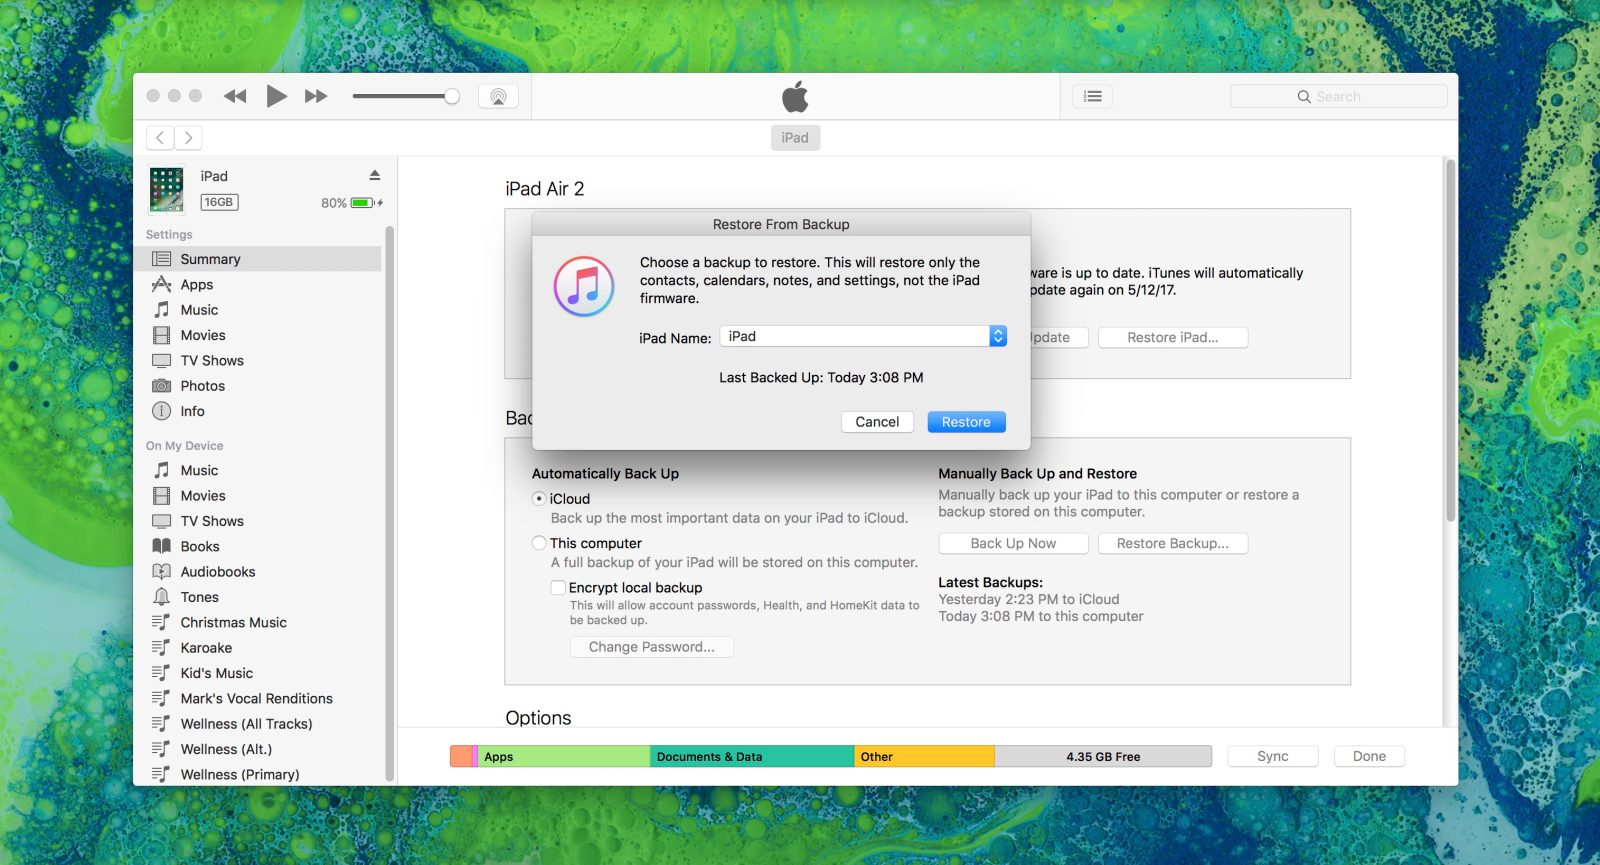 How to restore iPad from iTunes Backup - 9to5Mac